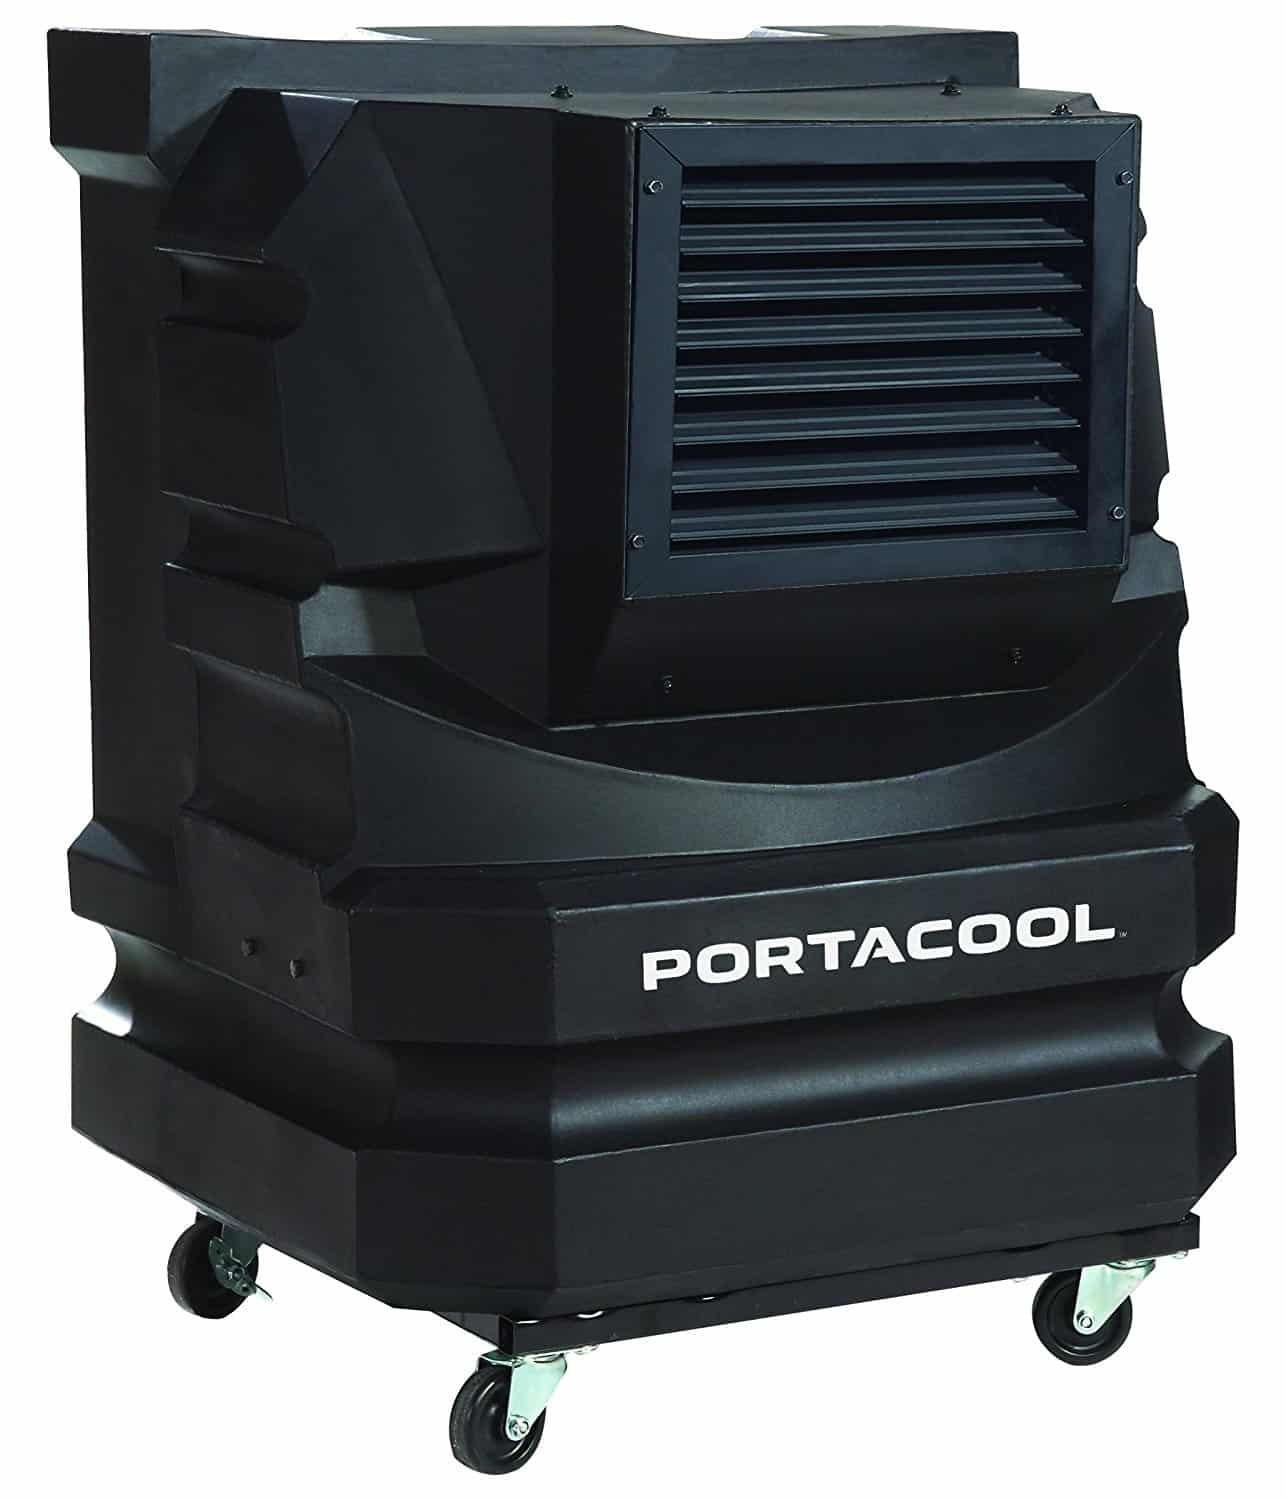 Portacool PAC2KCYC01 Cyclone 3000 Portable Evaporative Cooler